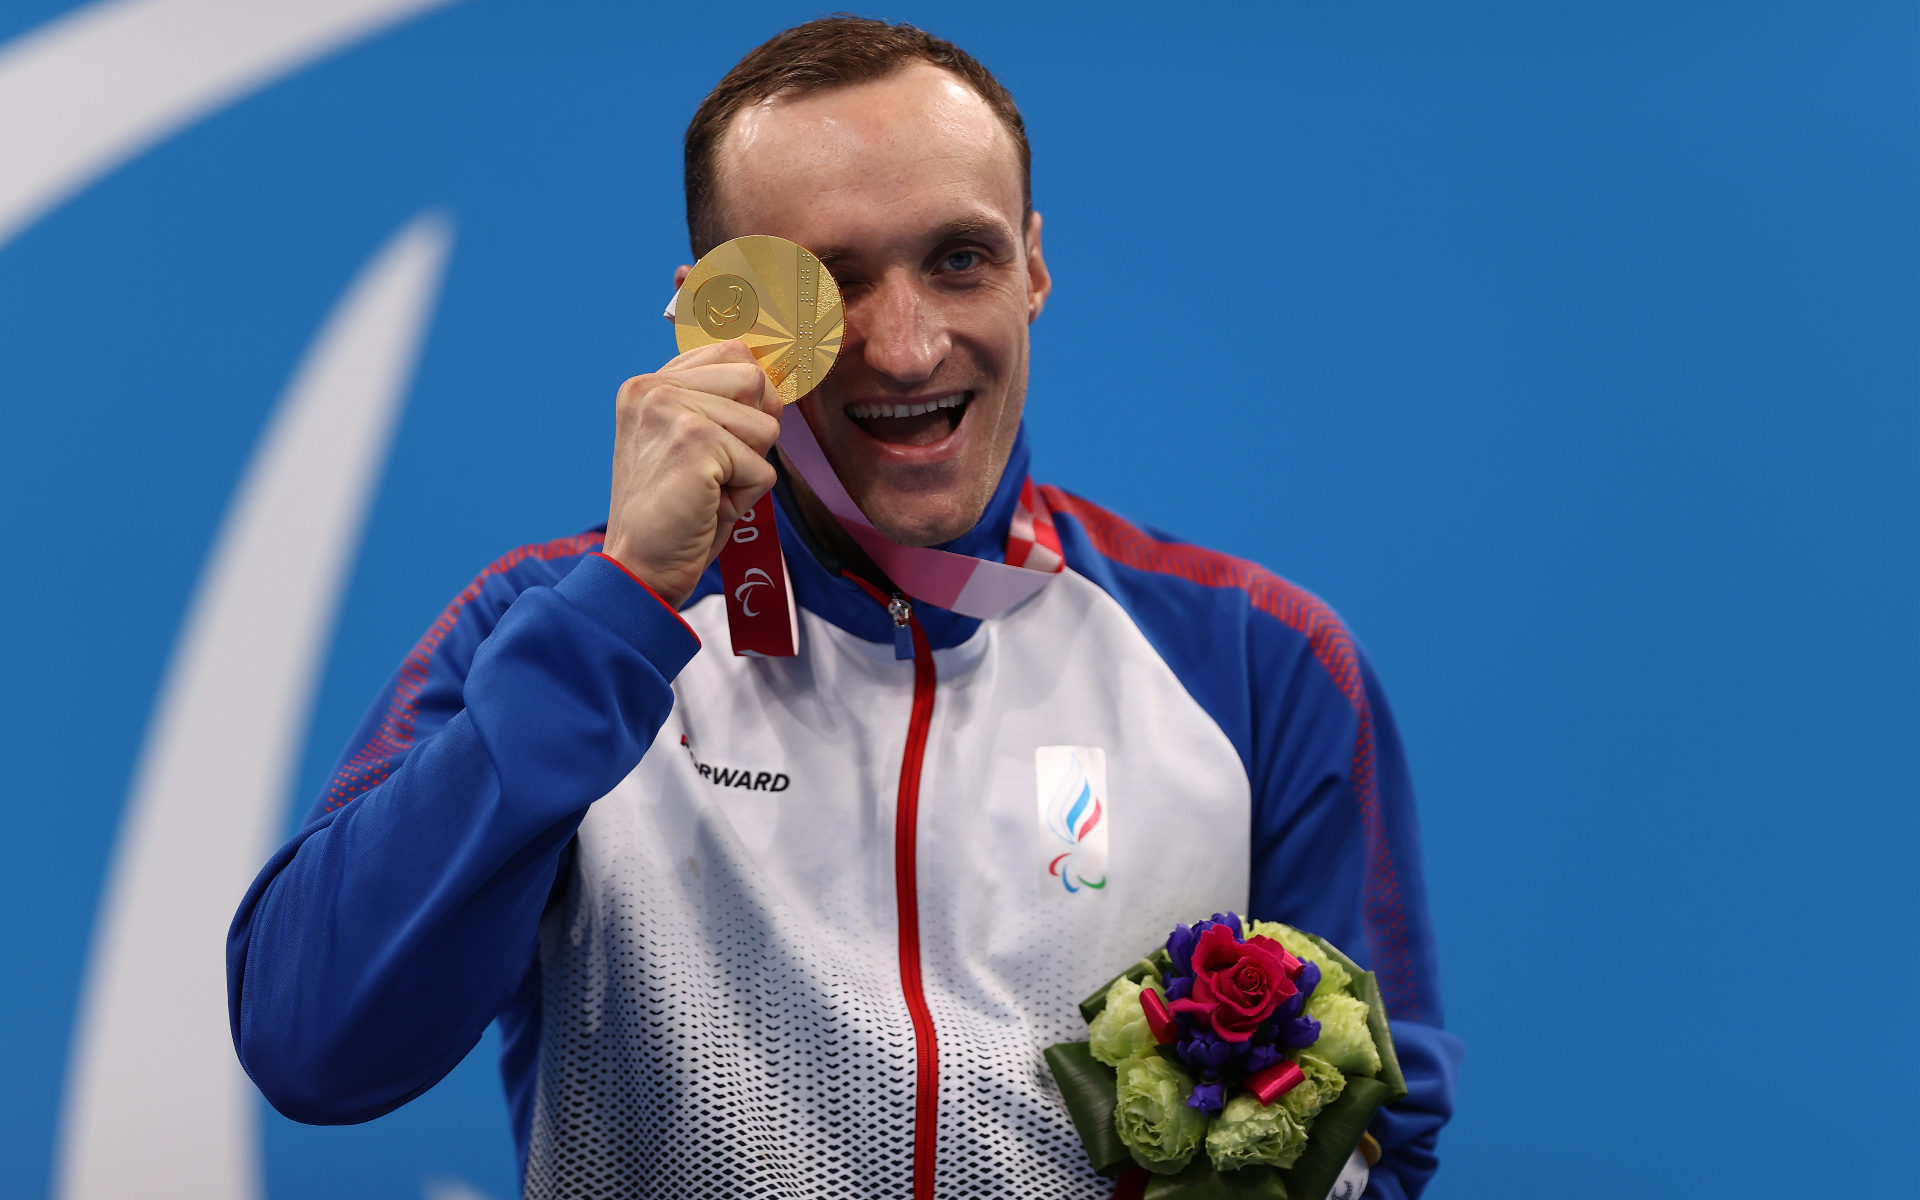 Фото: Dean Mouhtaropoulos/Getty Images for New Zealand Paralympic Committee